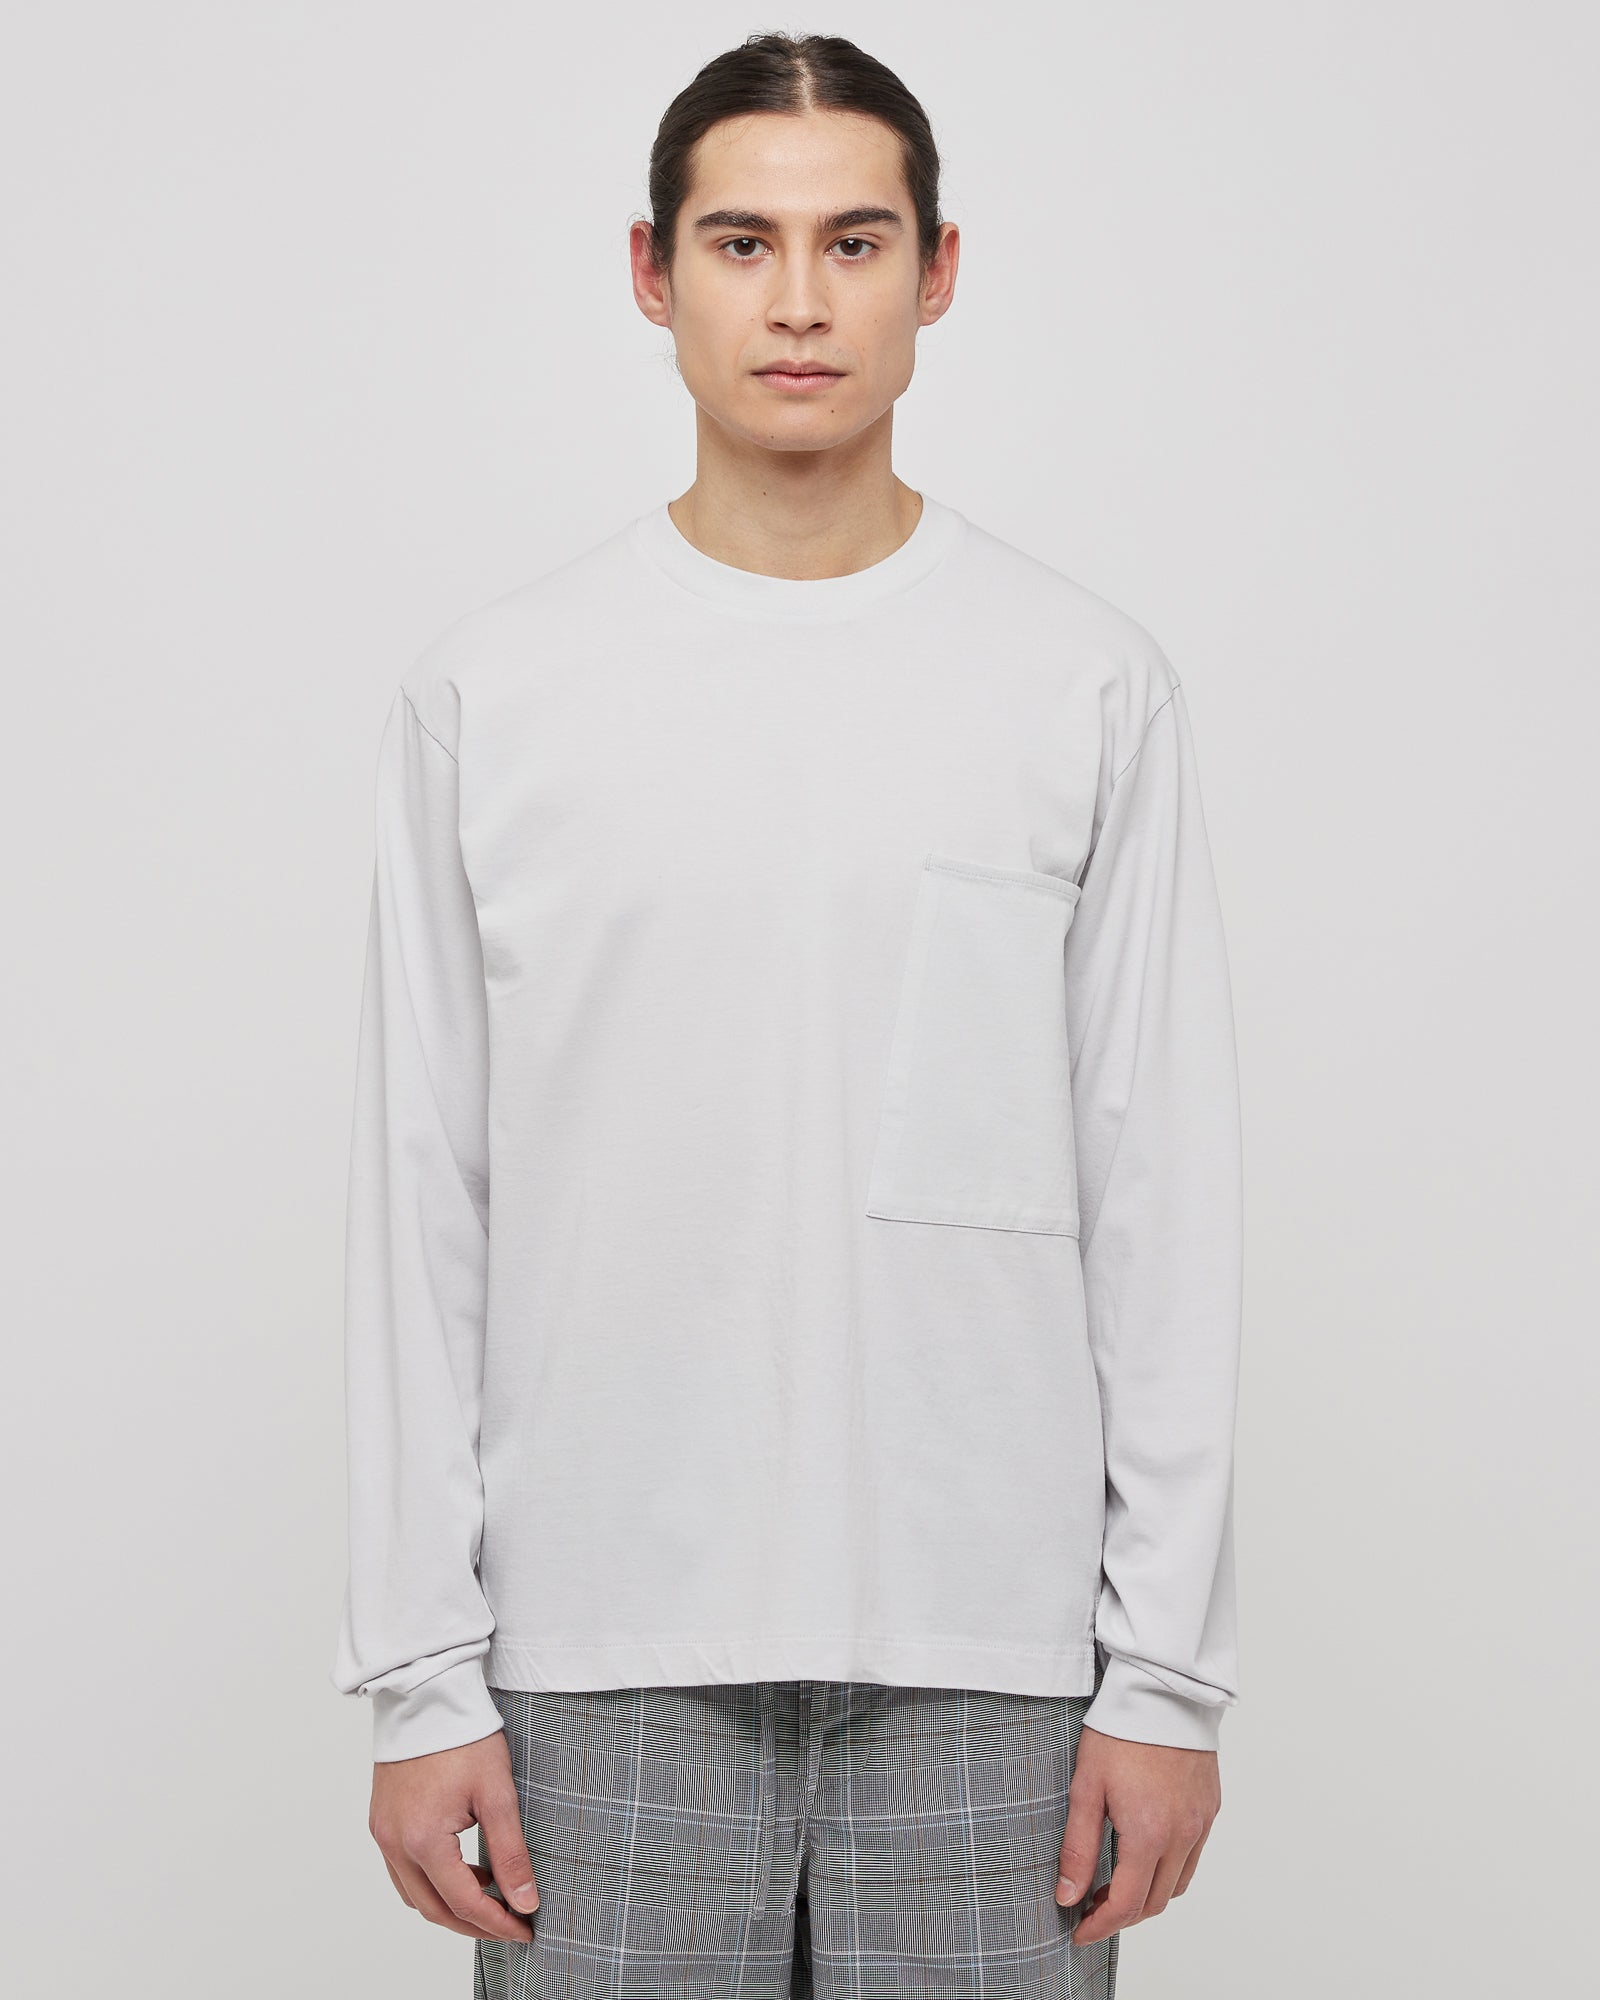 L/S Large Pocket Shirt in Light Gray